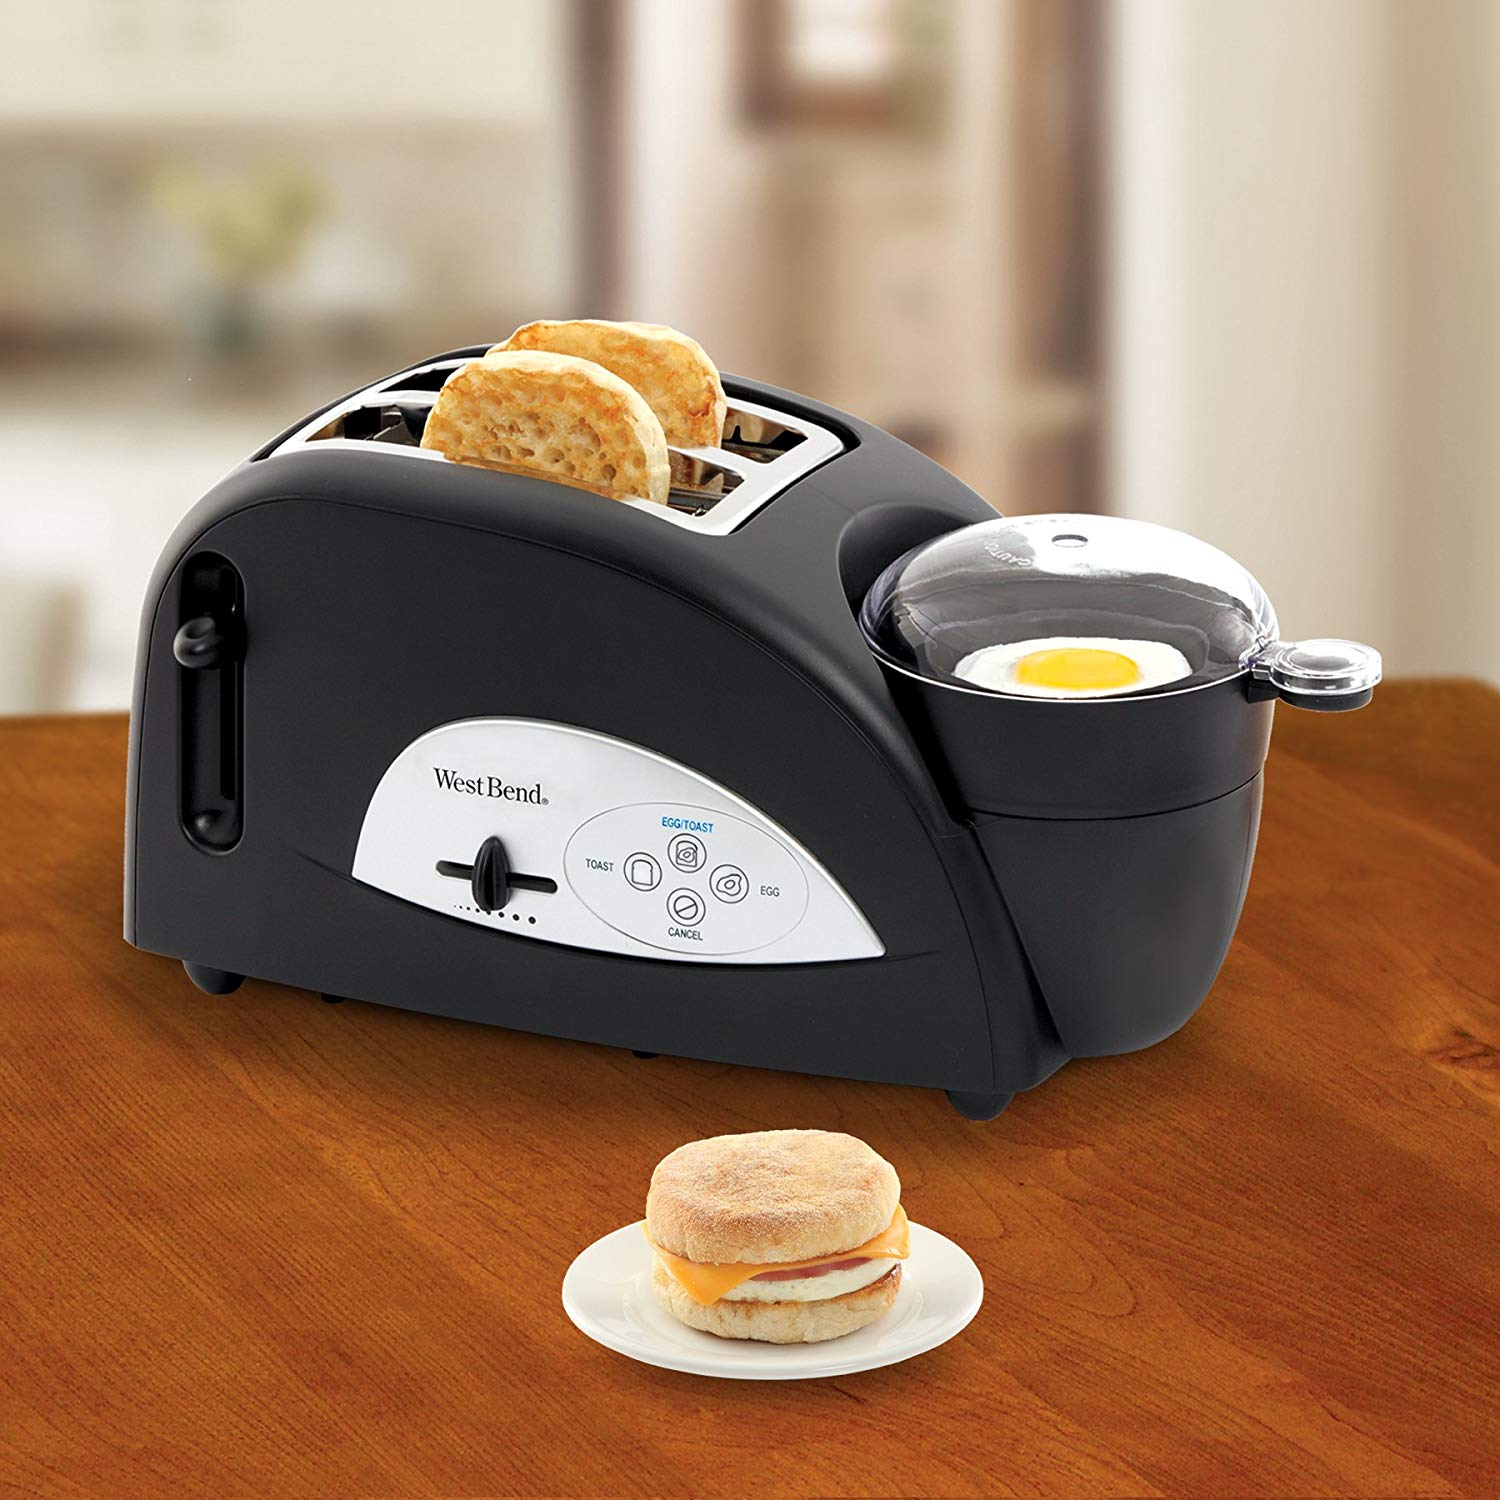 Toaster & Egg Poacher - OddGifts.com